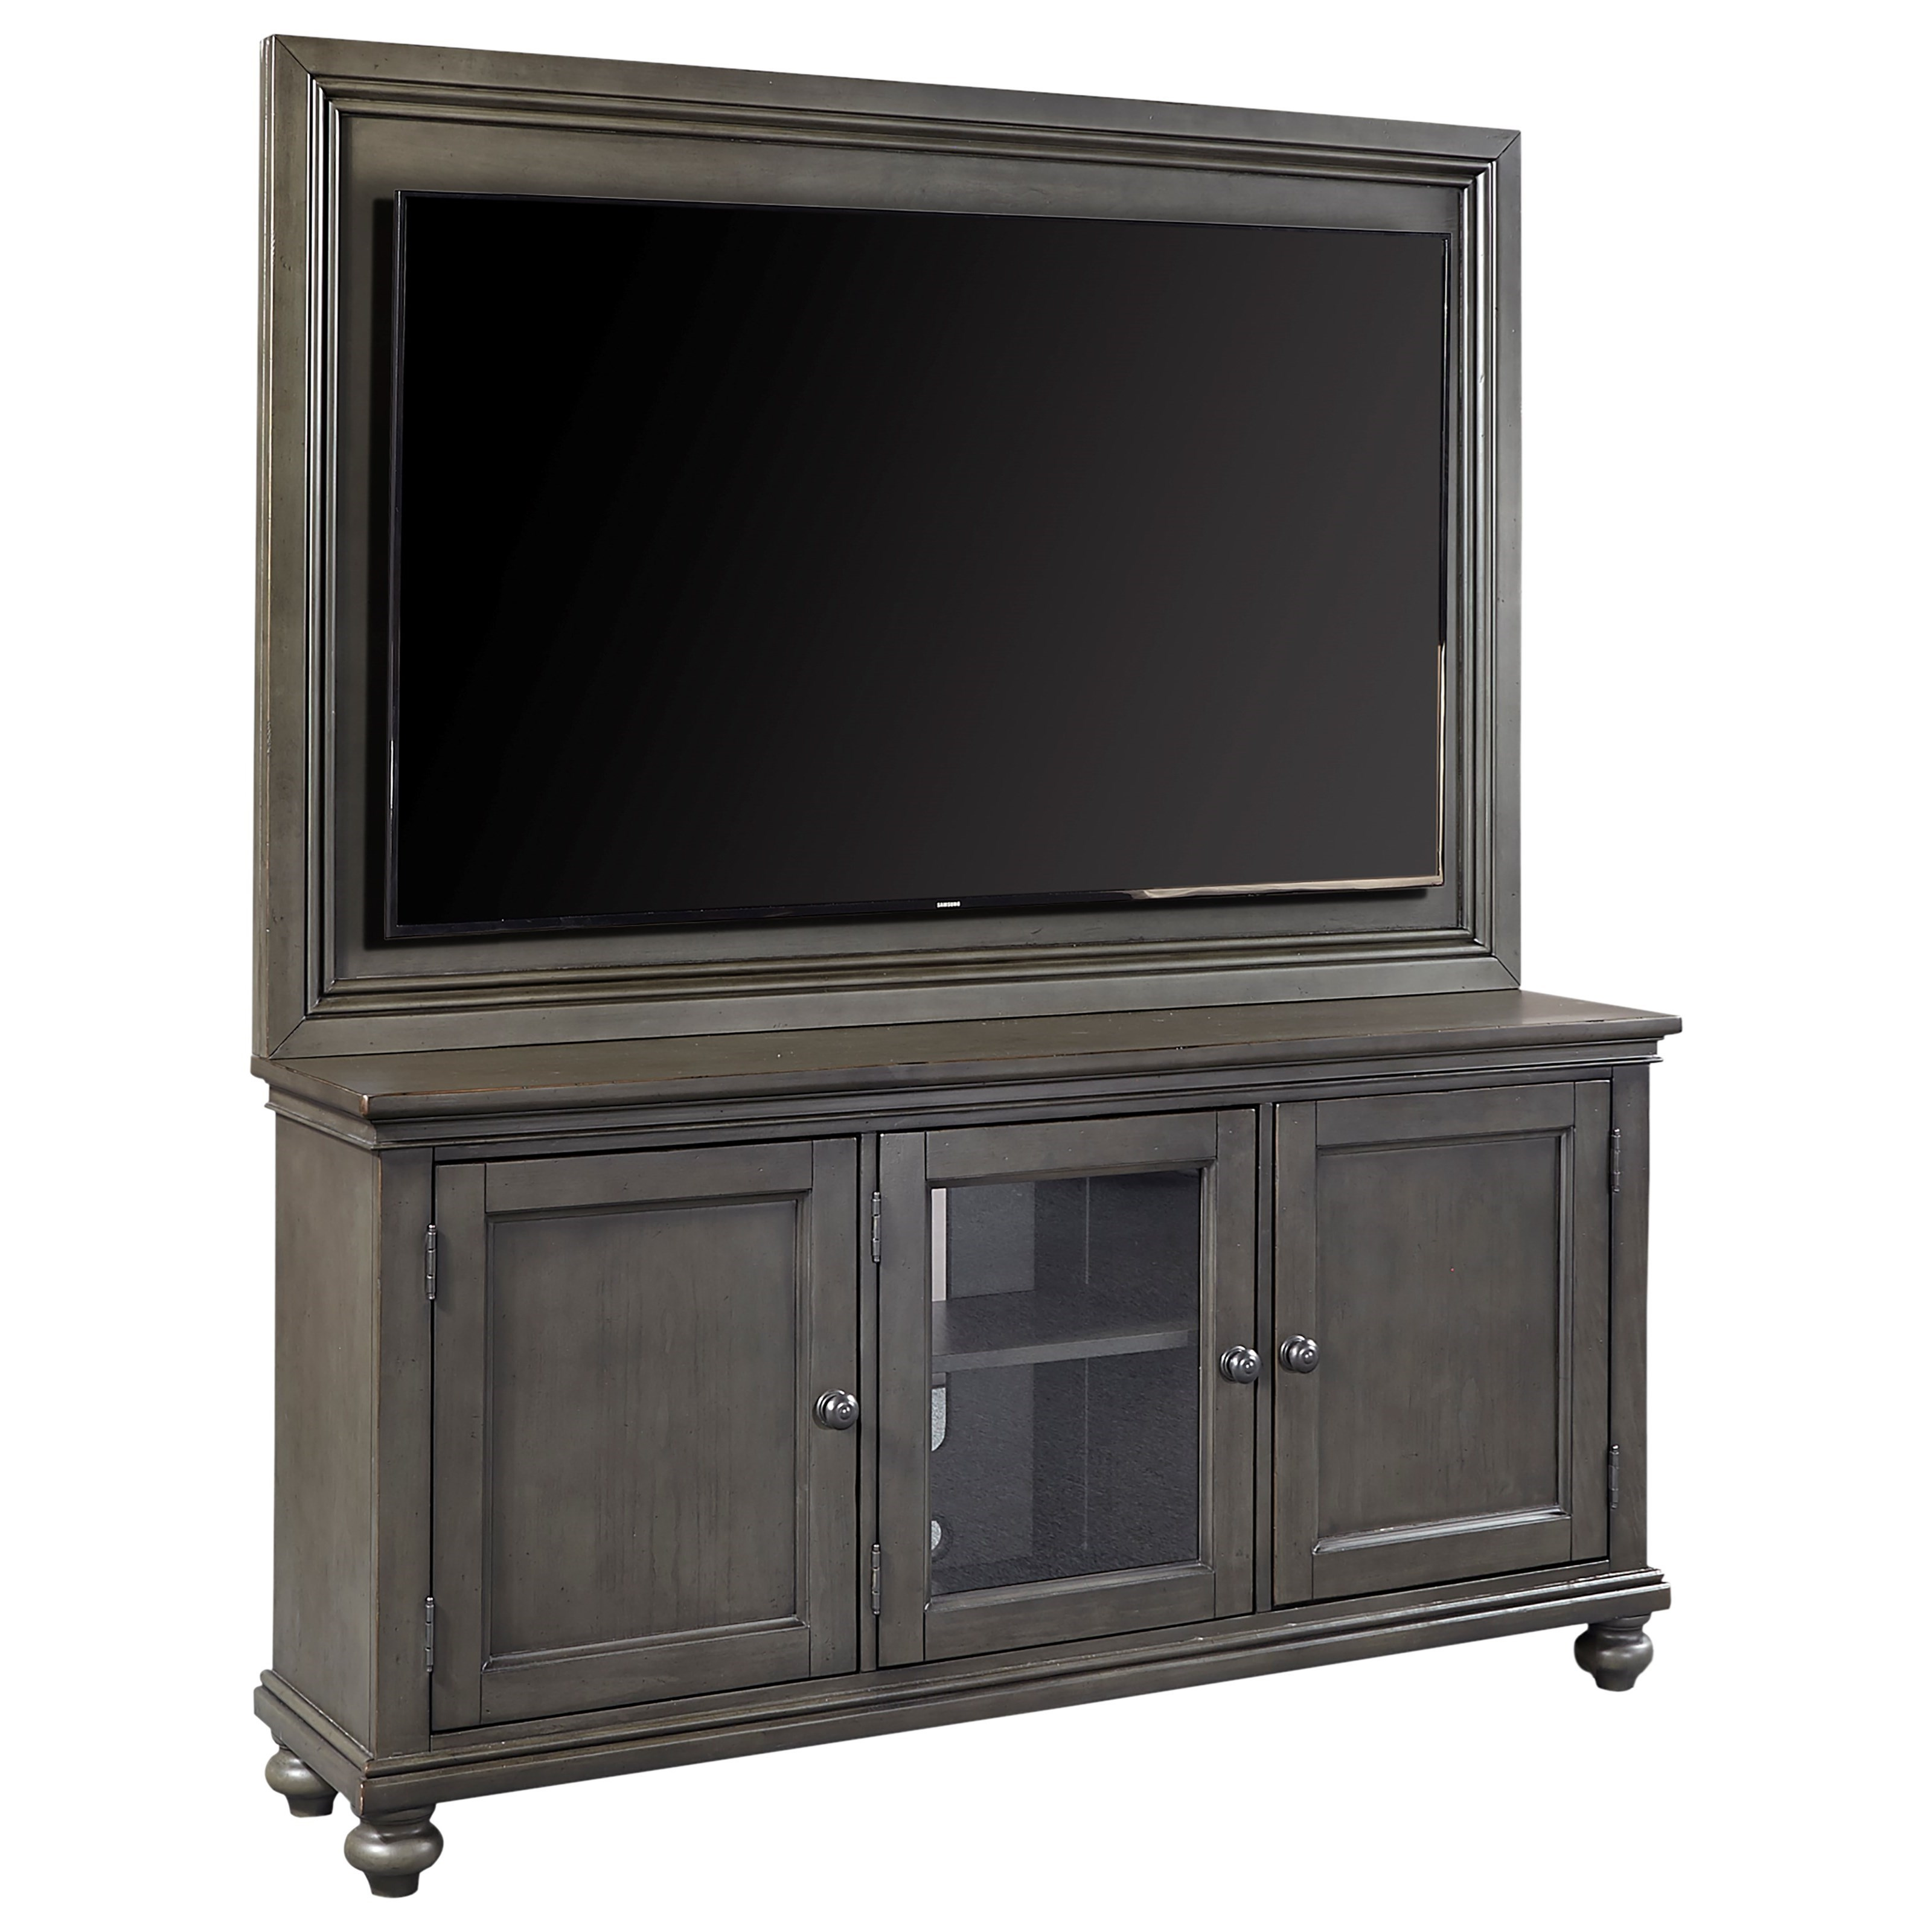 """Oxford 65"""" TV Stand With Backer by Aspenhome at Walker's Furniture"""